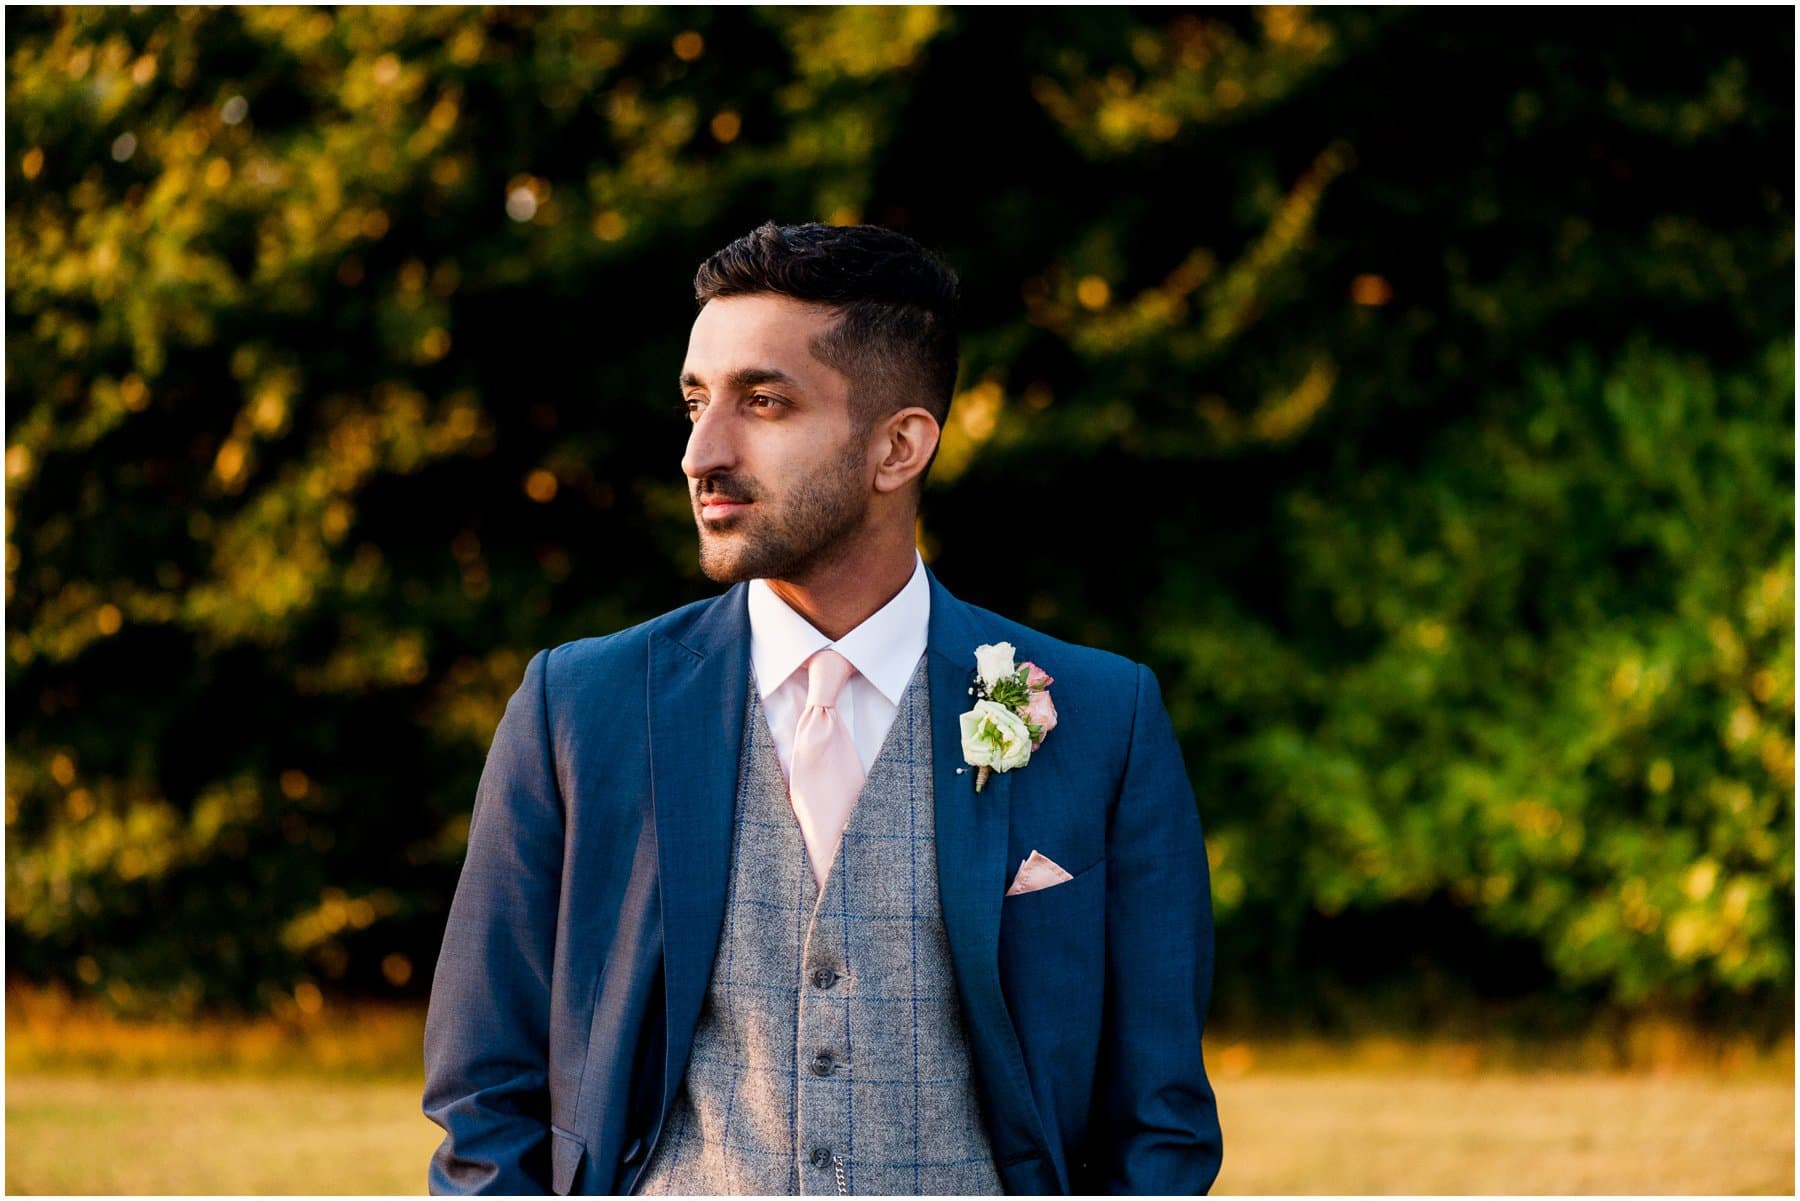 Kirsty and Yuvender's wedding at Packington Moor Farm by Lisa Carpenter Photography, West Midlands Wedding Photographer